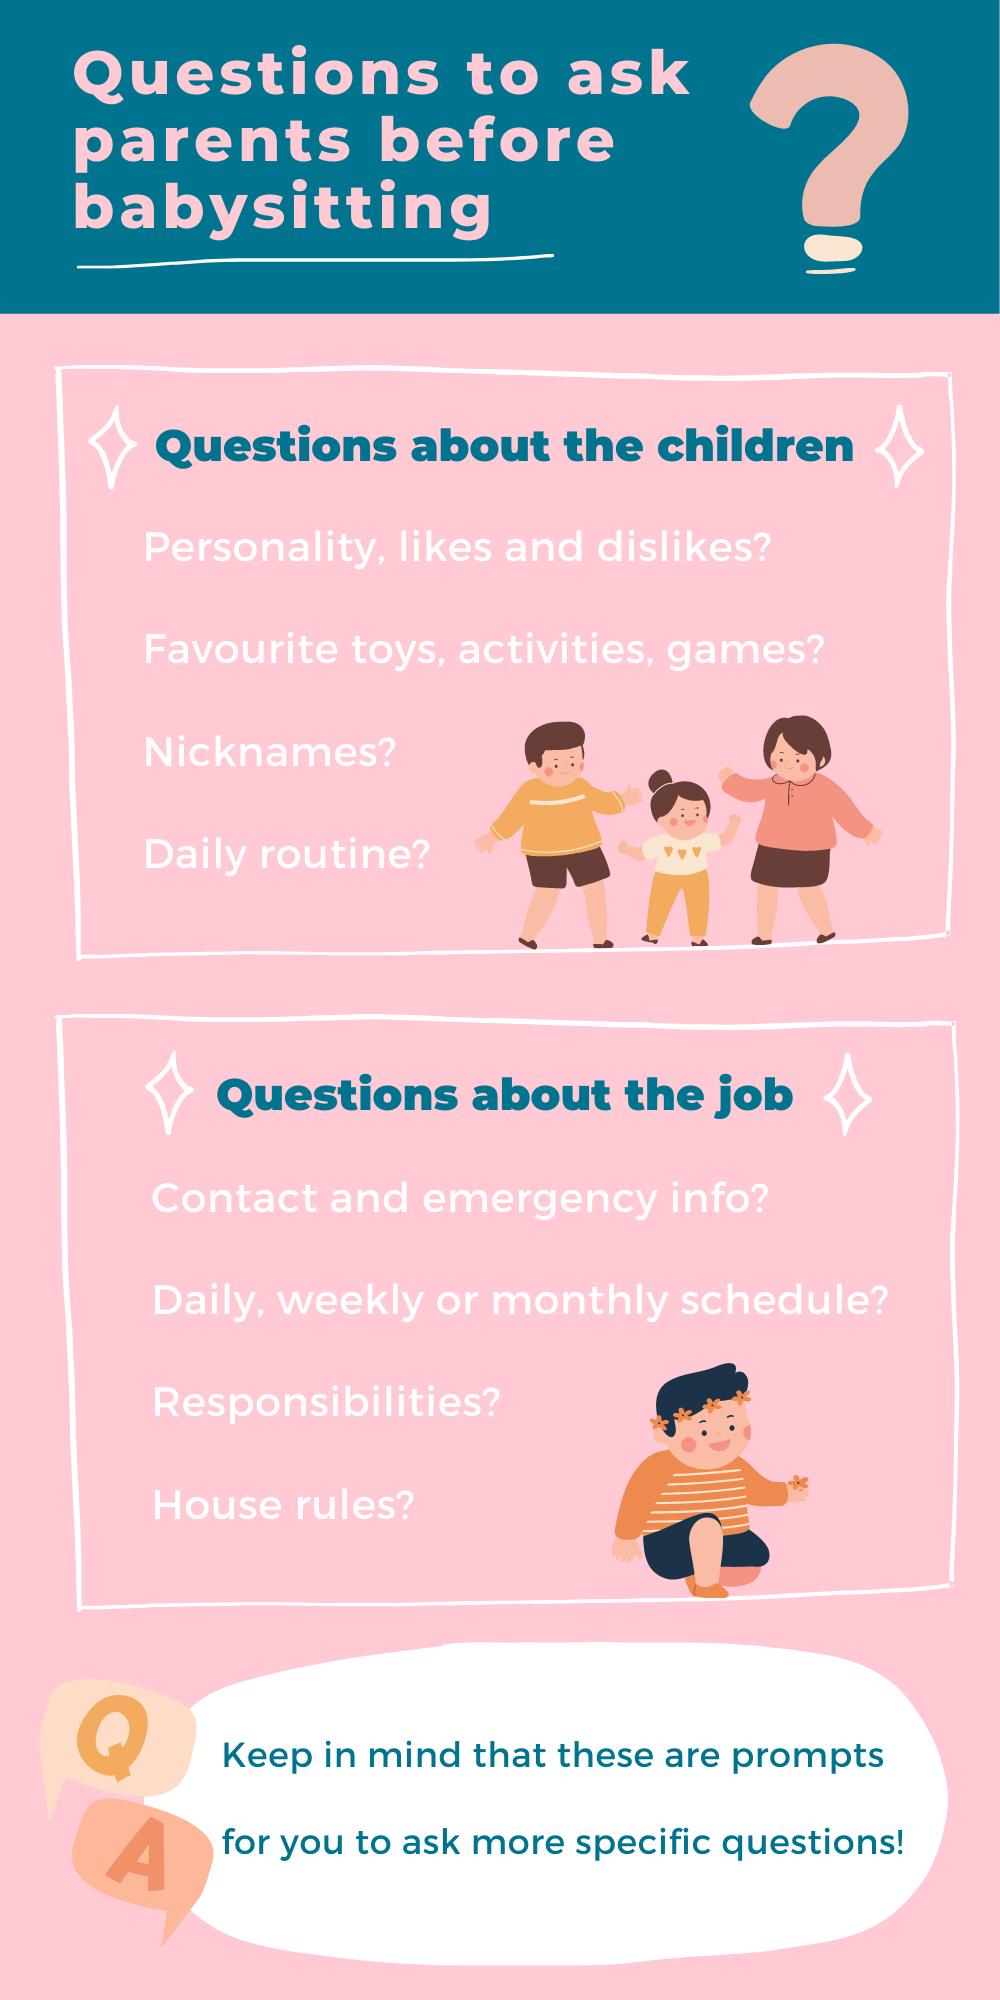 Questions to ask parents before babysitting